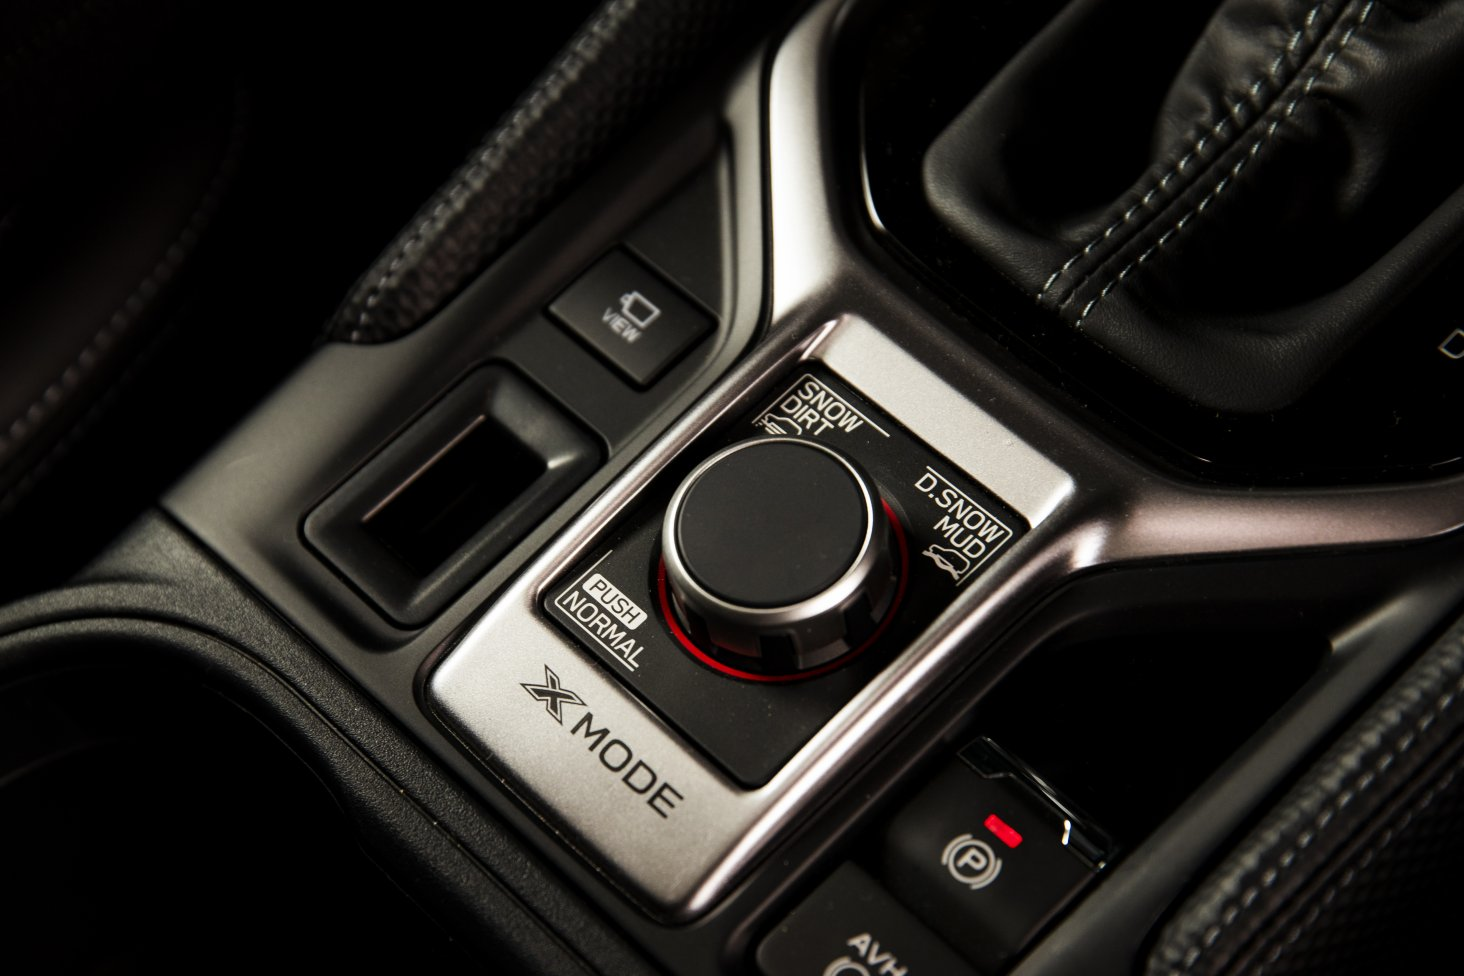 The Subaru Forester Premium has a new dual-mode selector for the X-Mode off-road setting.